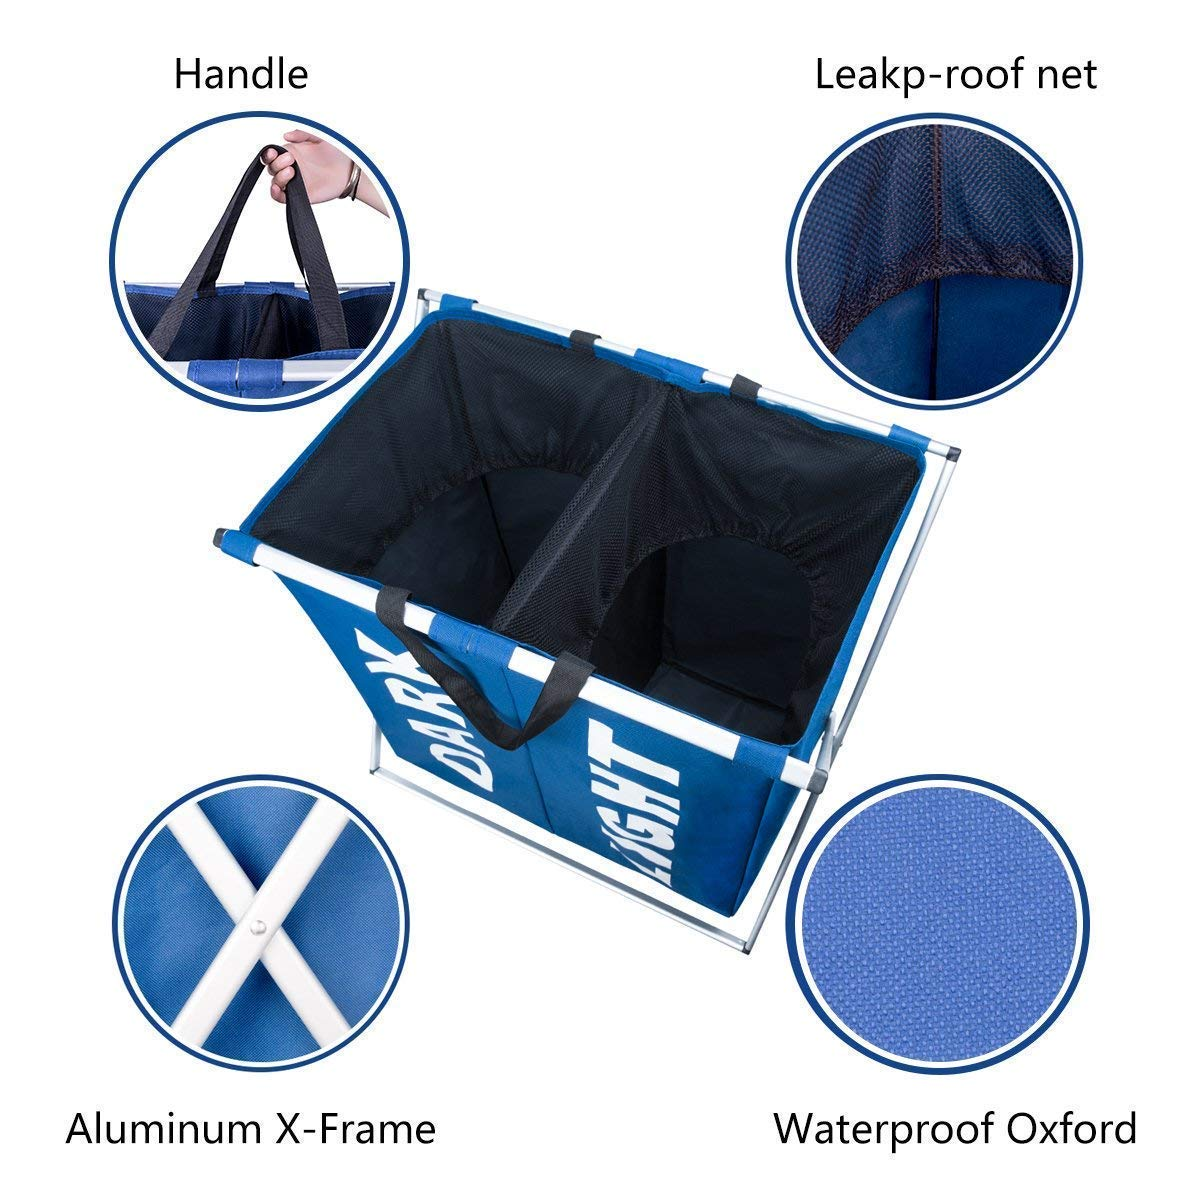 WISHPOOL 2 Sections Laundry Hamper Bag with Aluminium X-Frame Double Laundry Basket Durable Dirty Clothes Hamper for College Apartment Home Use(Blue)